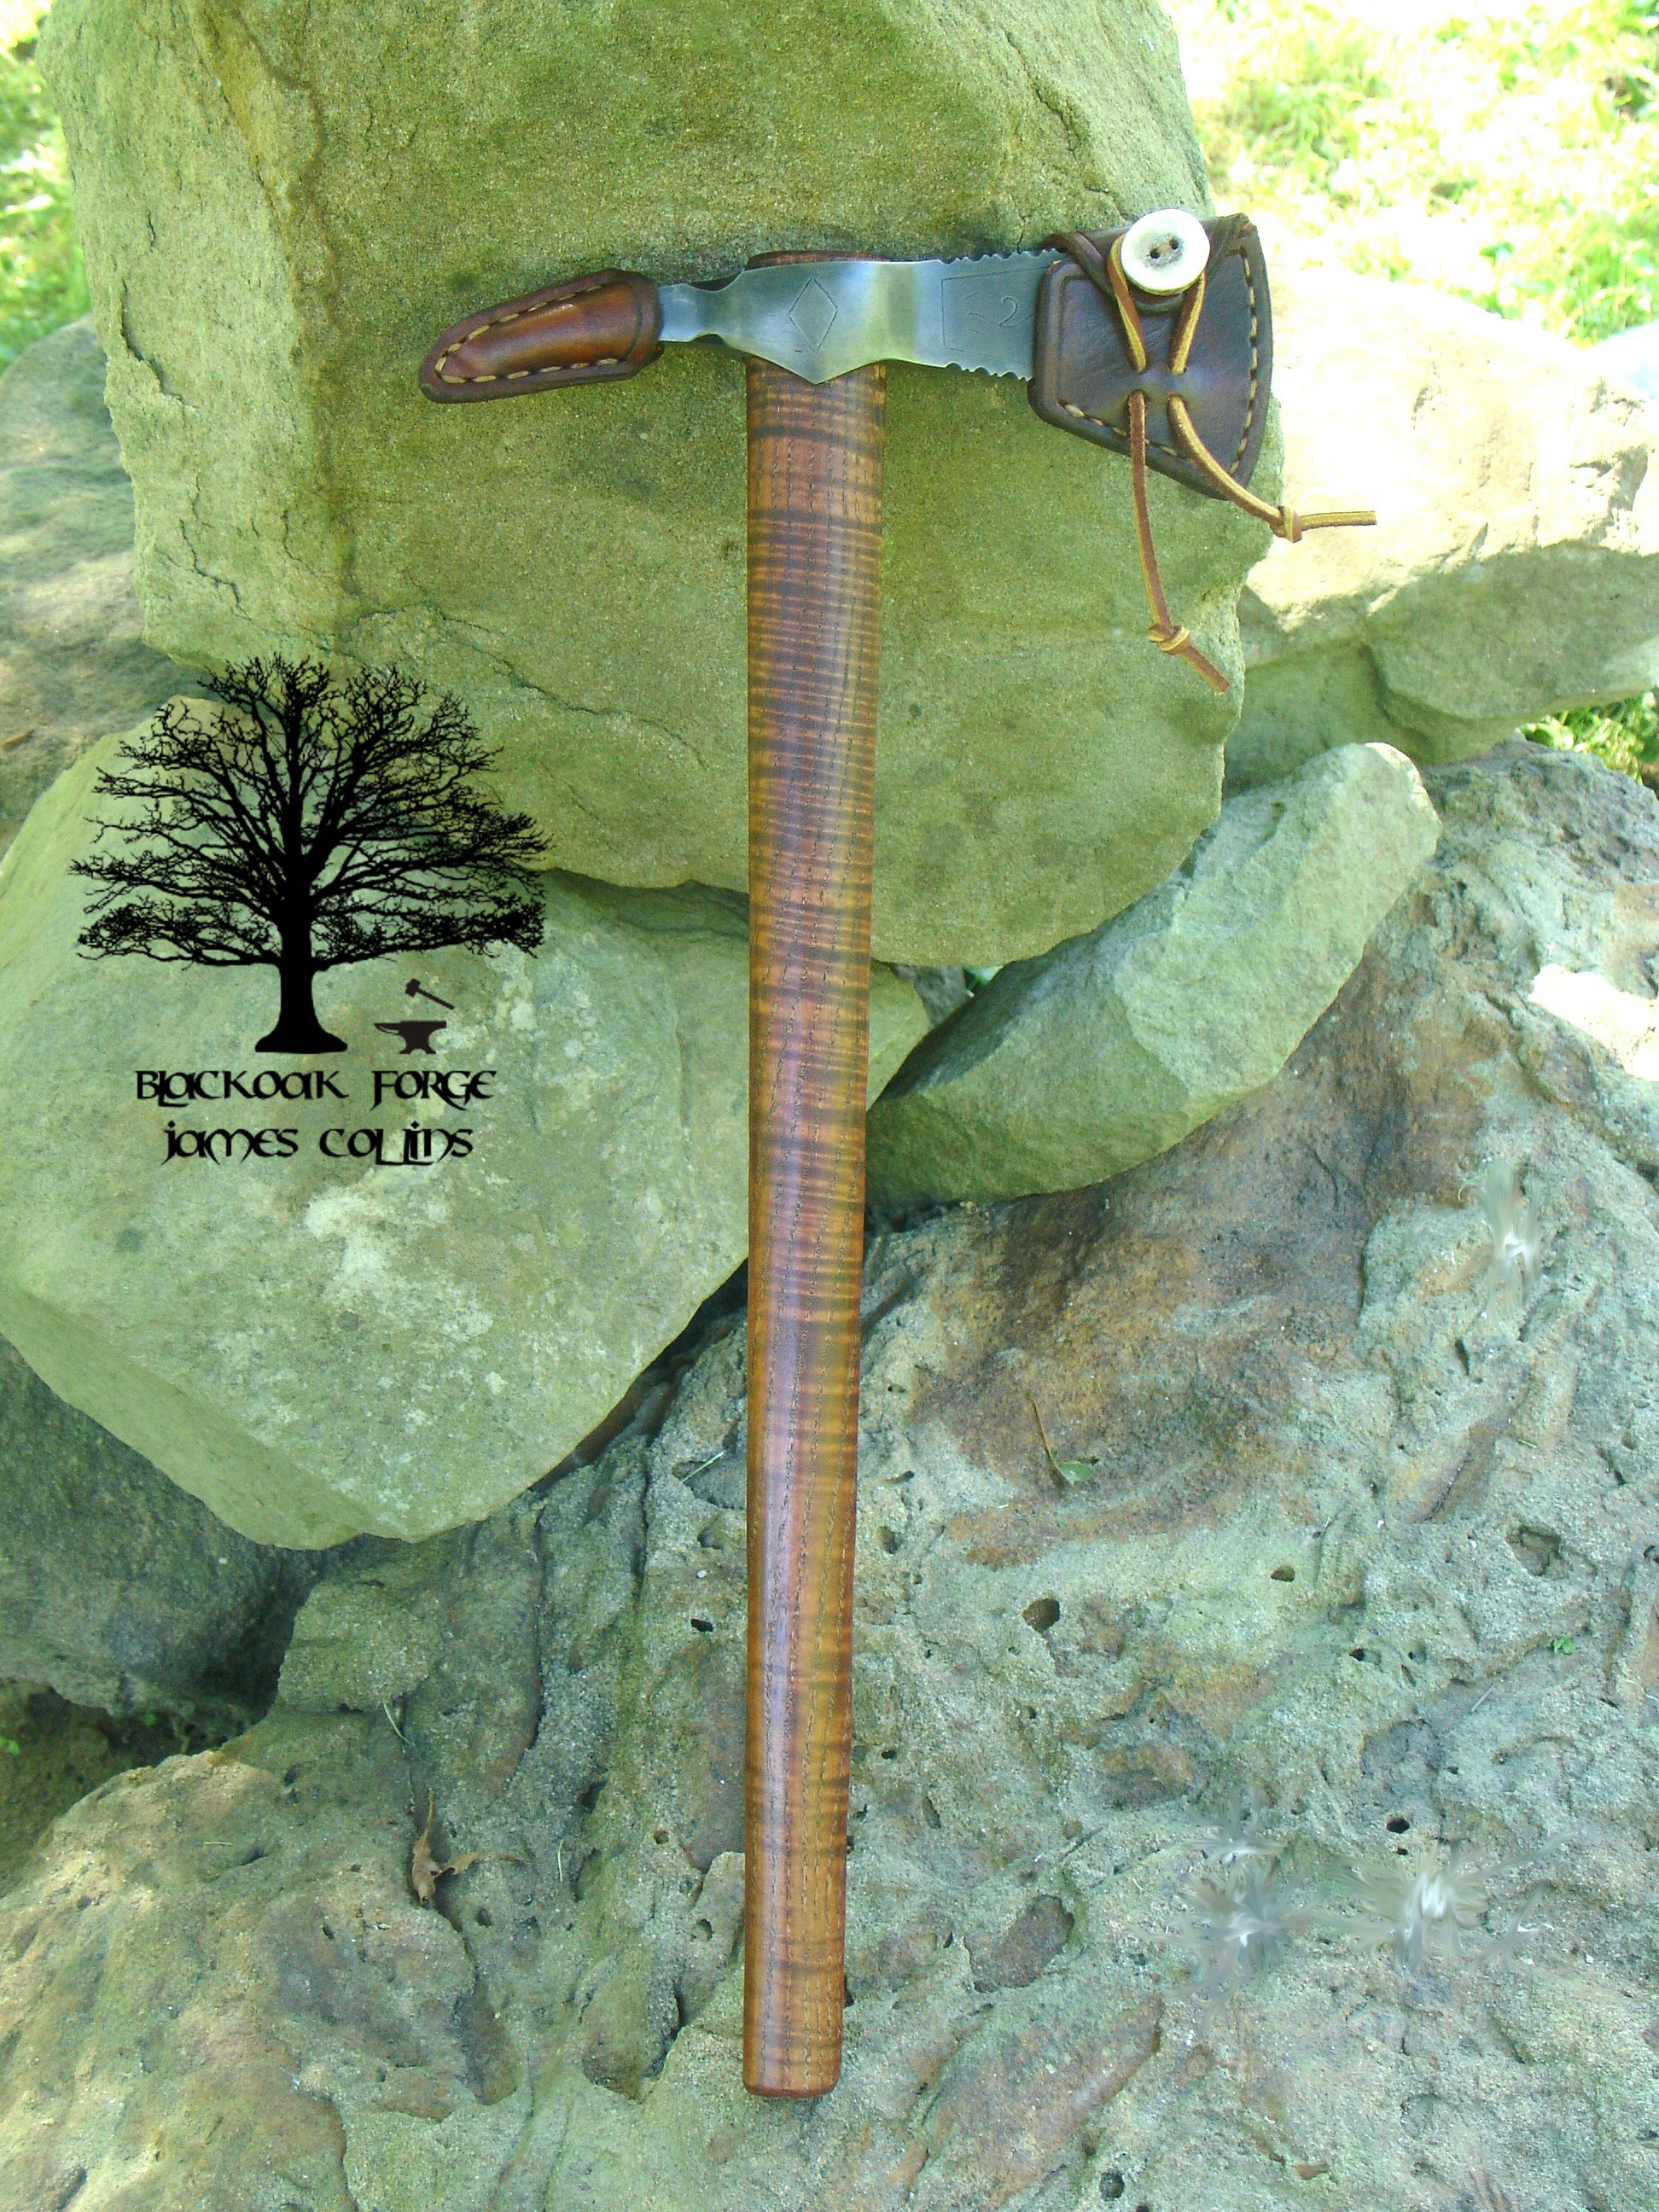 Etched Spike Point Tomahawk by James Collins Blackoak Forge